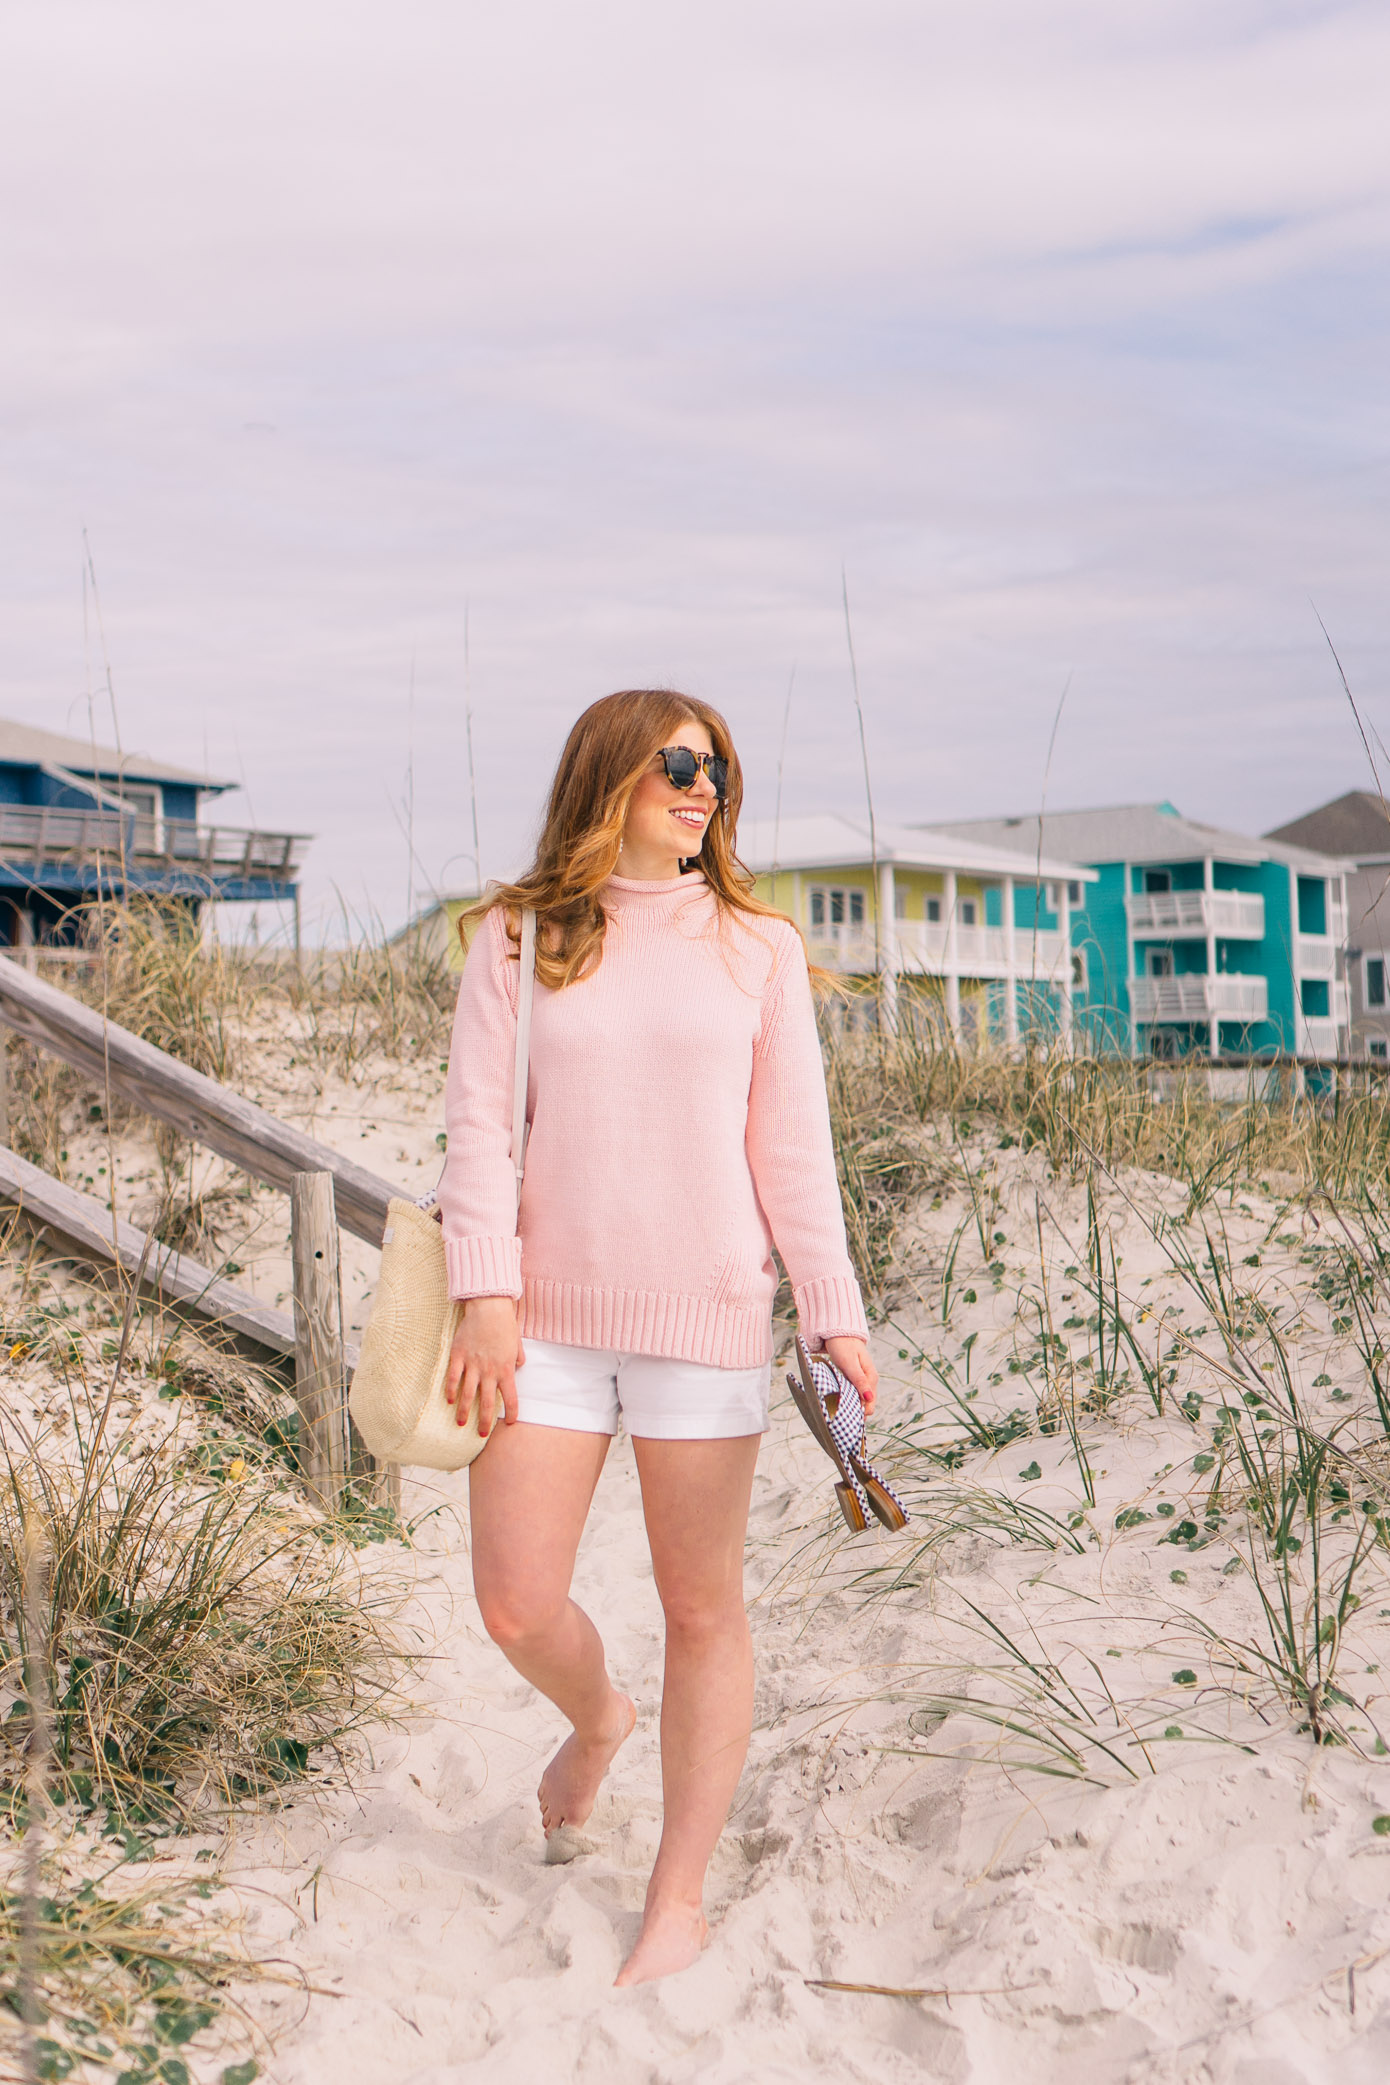 Pink Lightweight Beach Sweater | Preppy Beach Style | Louella Reese Life & Style Blog